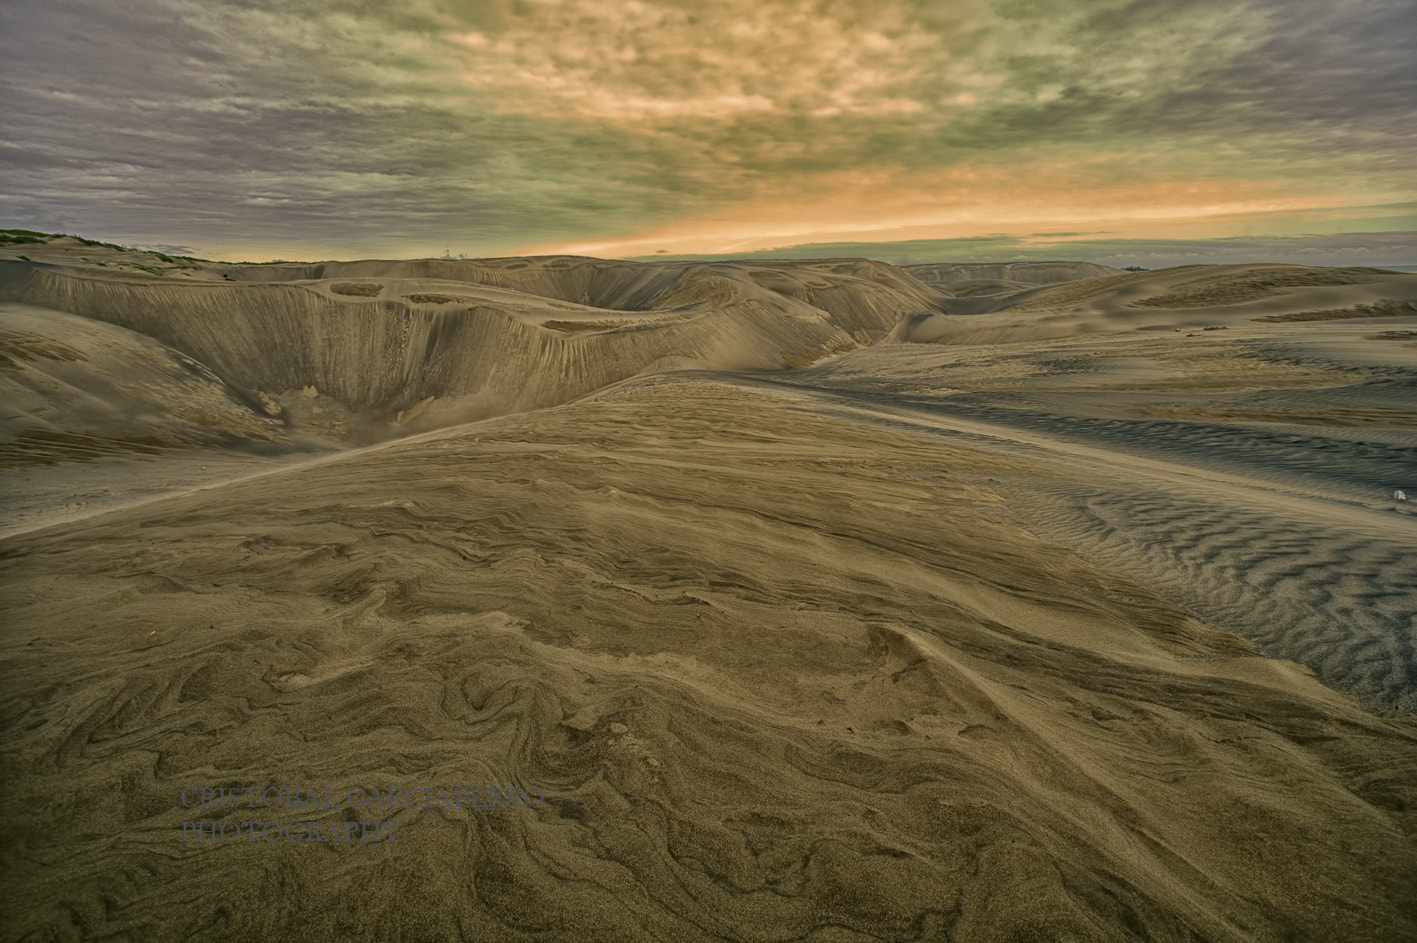 Photograph Dunes and sunrise by Cristobal Garciaferro Rubio on 500px